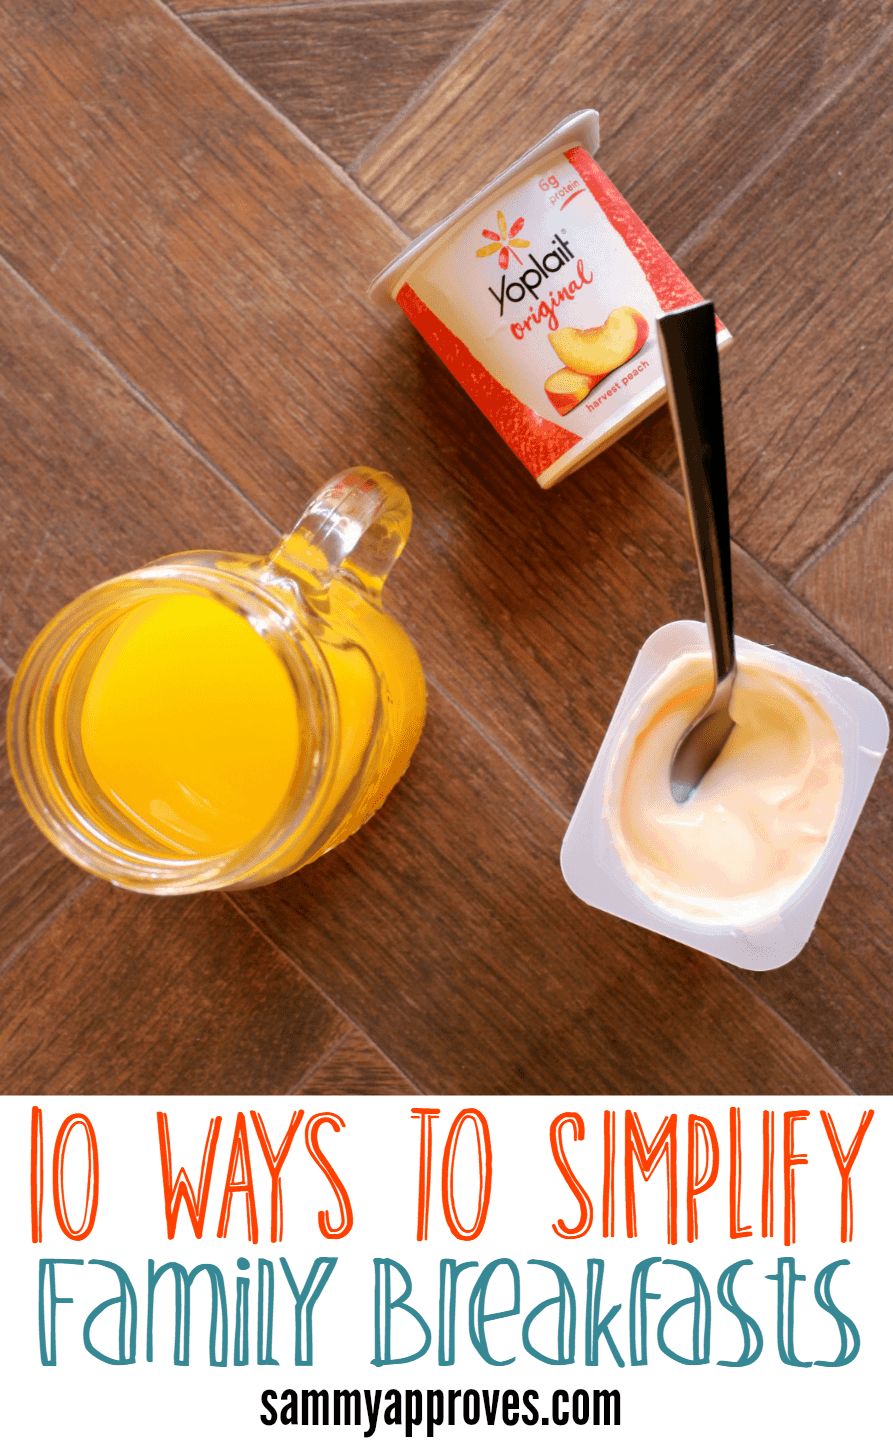 Simplify Family Breakfasts